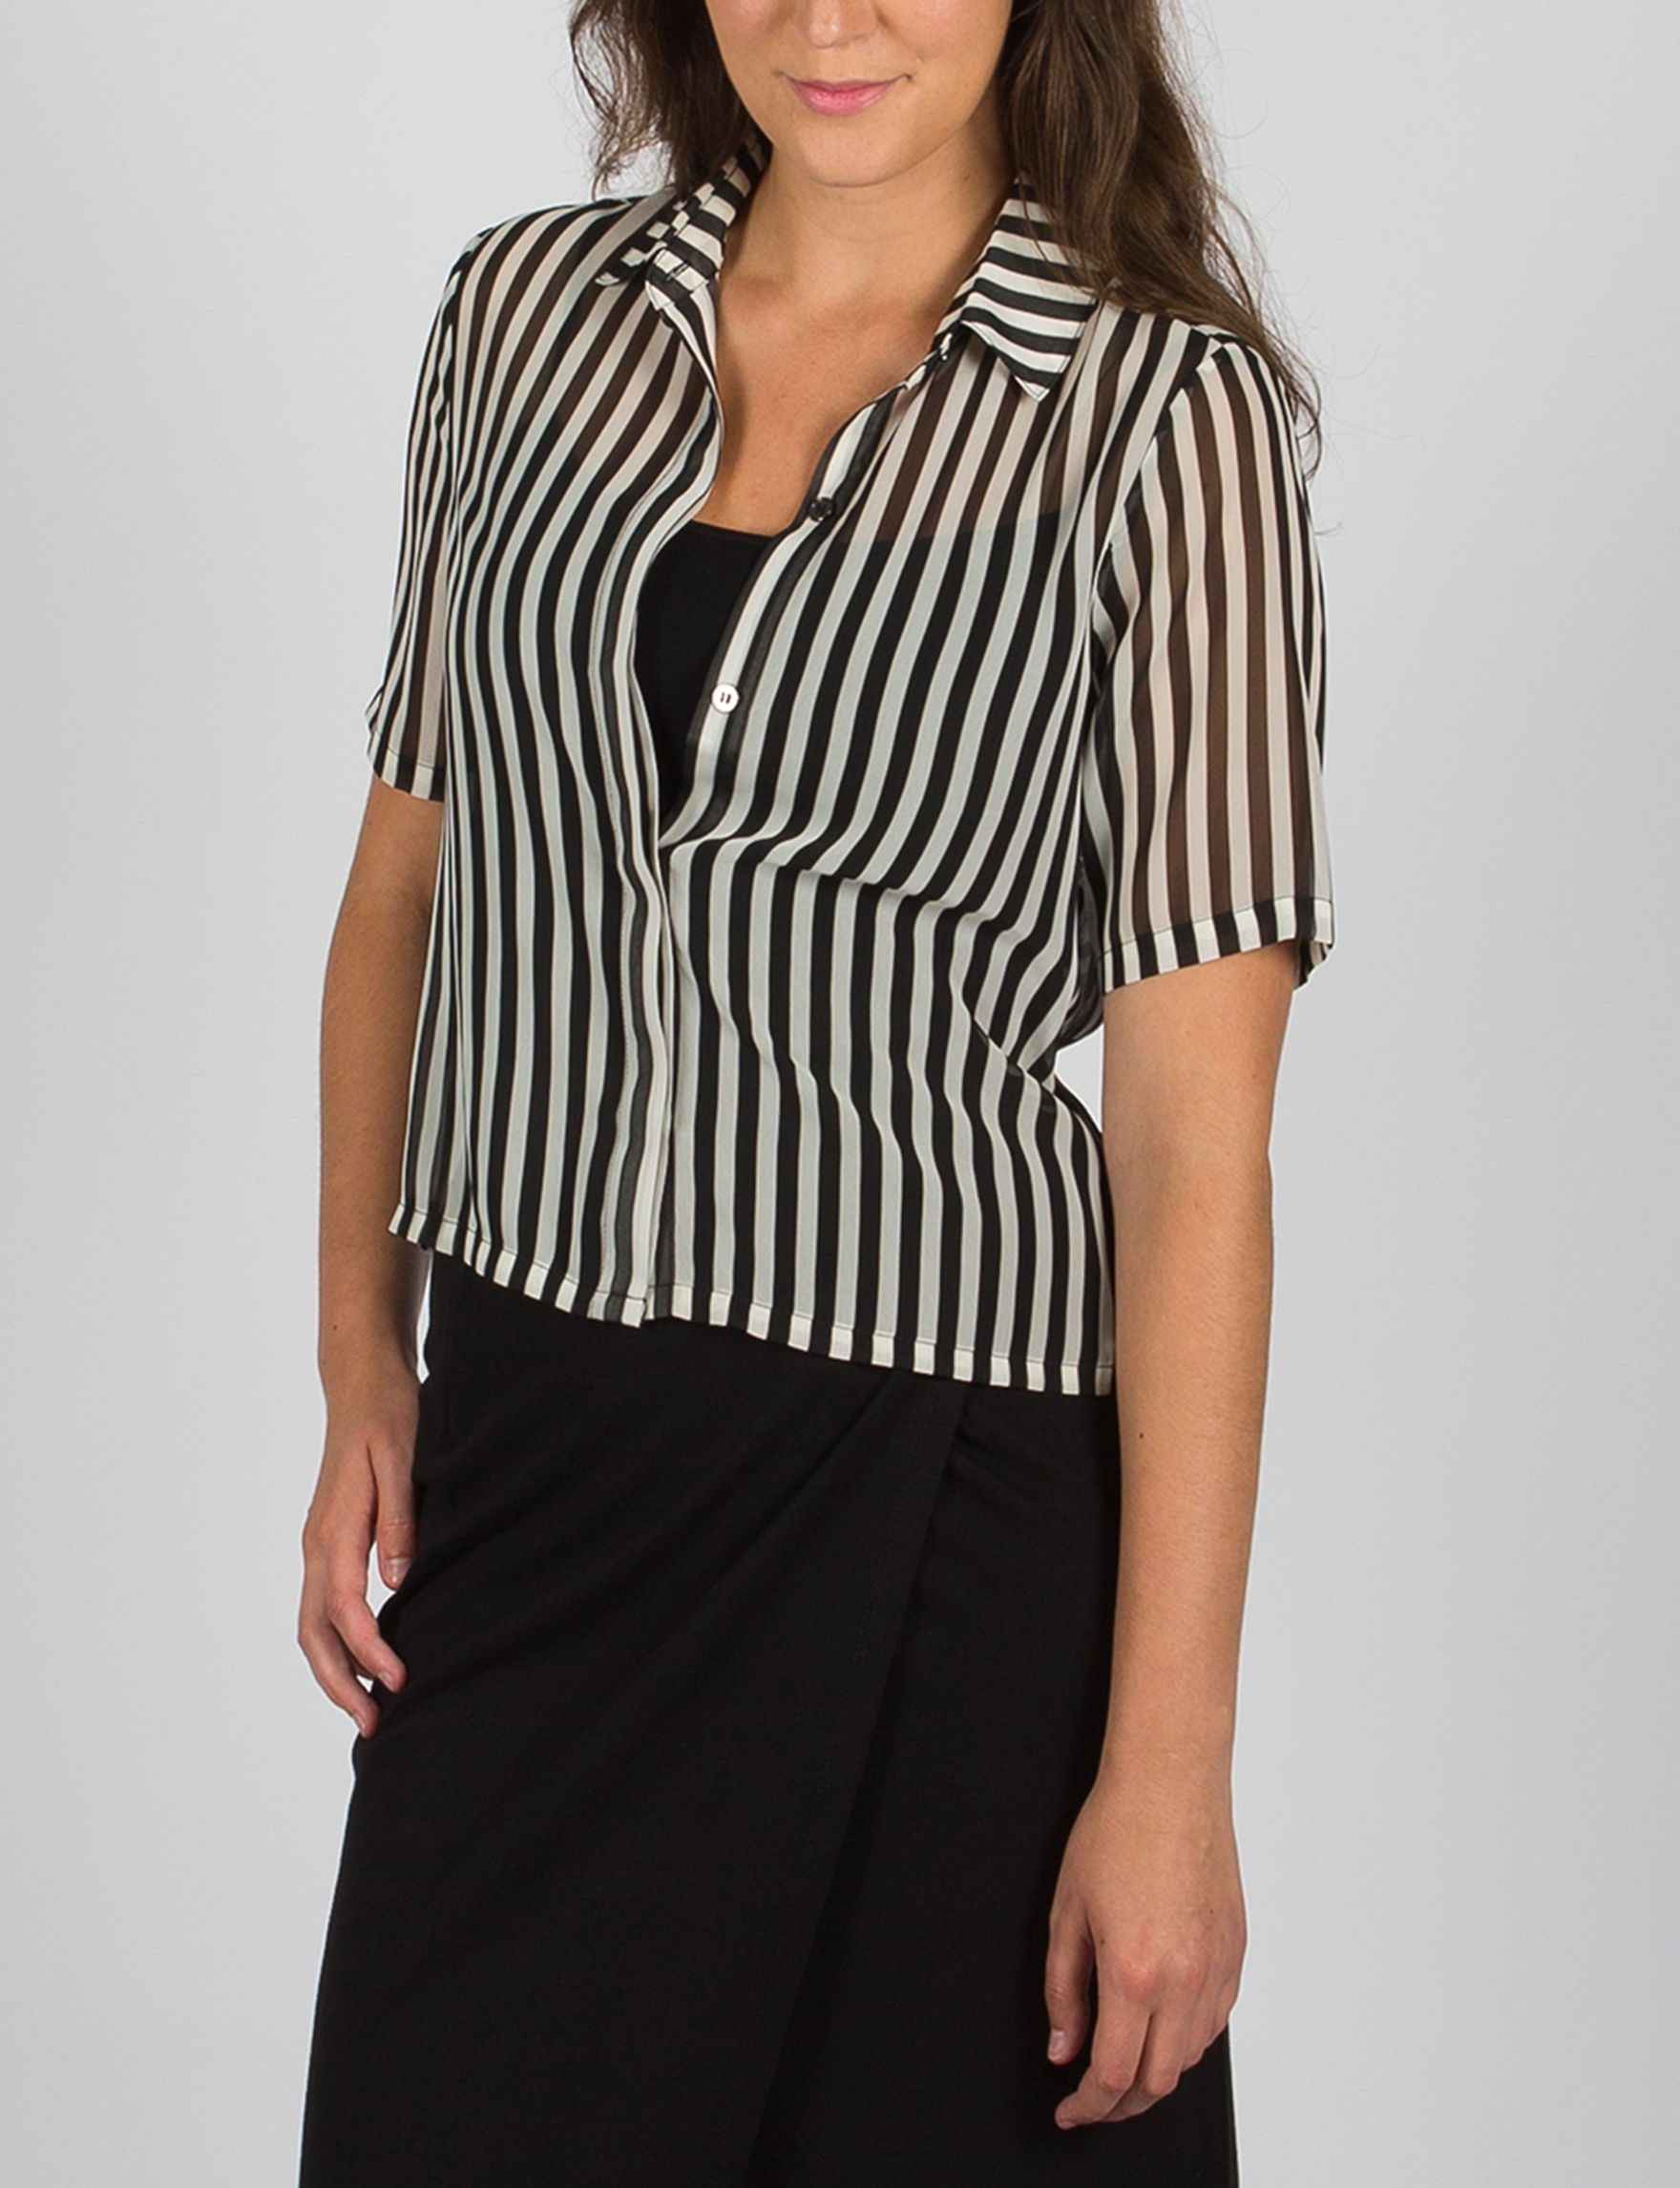 ABS by Allen Schwartz Black / White Shirts & Blouses Strapless